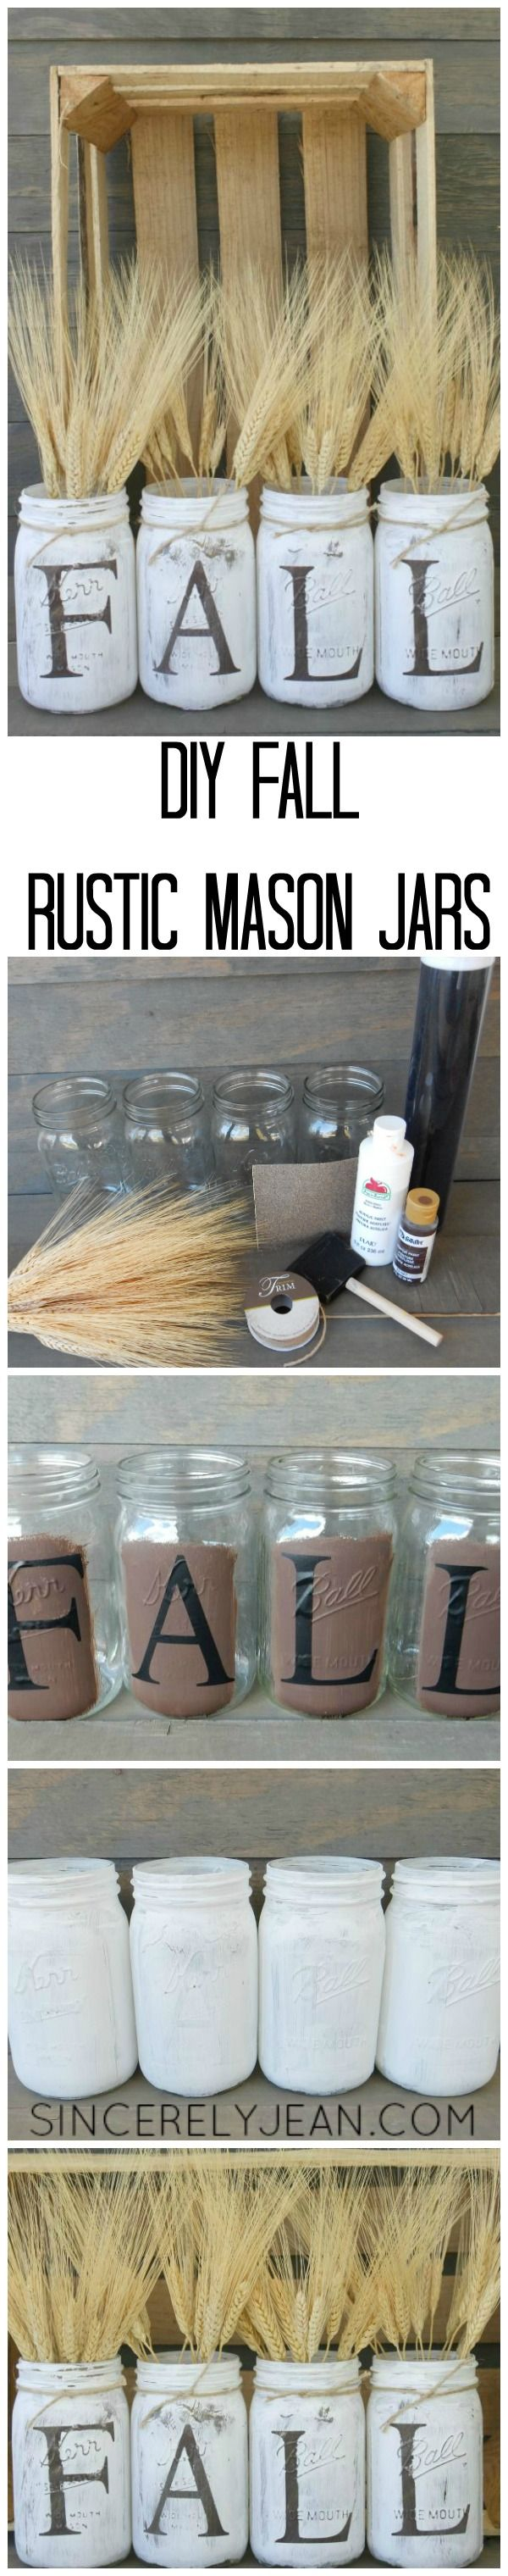 Fall Rustic Mason Jars - an easy and beautiful fall craft! | www.sincerelyjean.com